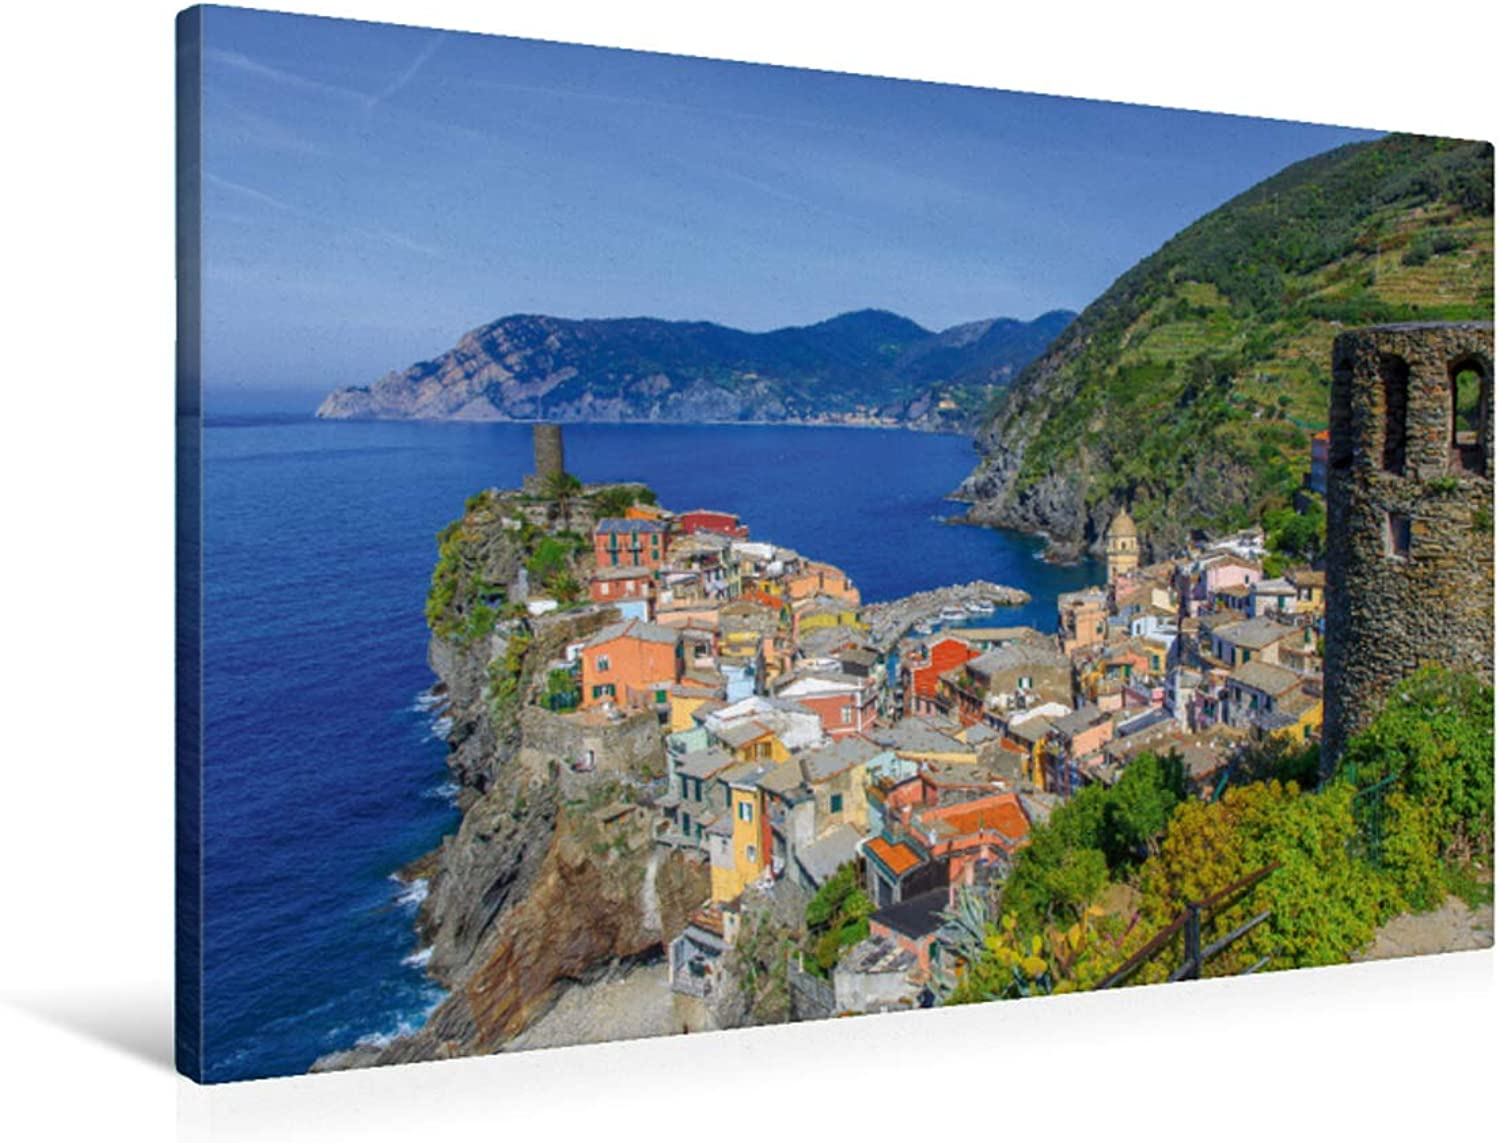 Premium Textile Canvas 90 x x x 60 cm Vernazza East View 8c12db